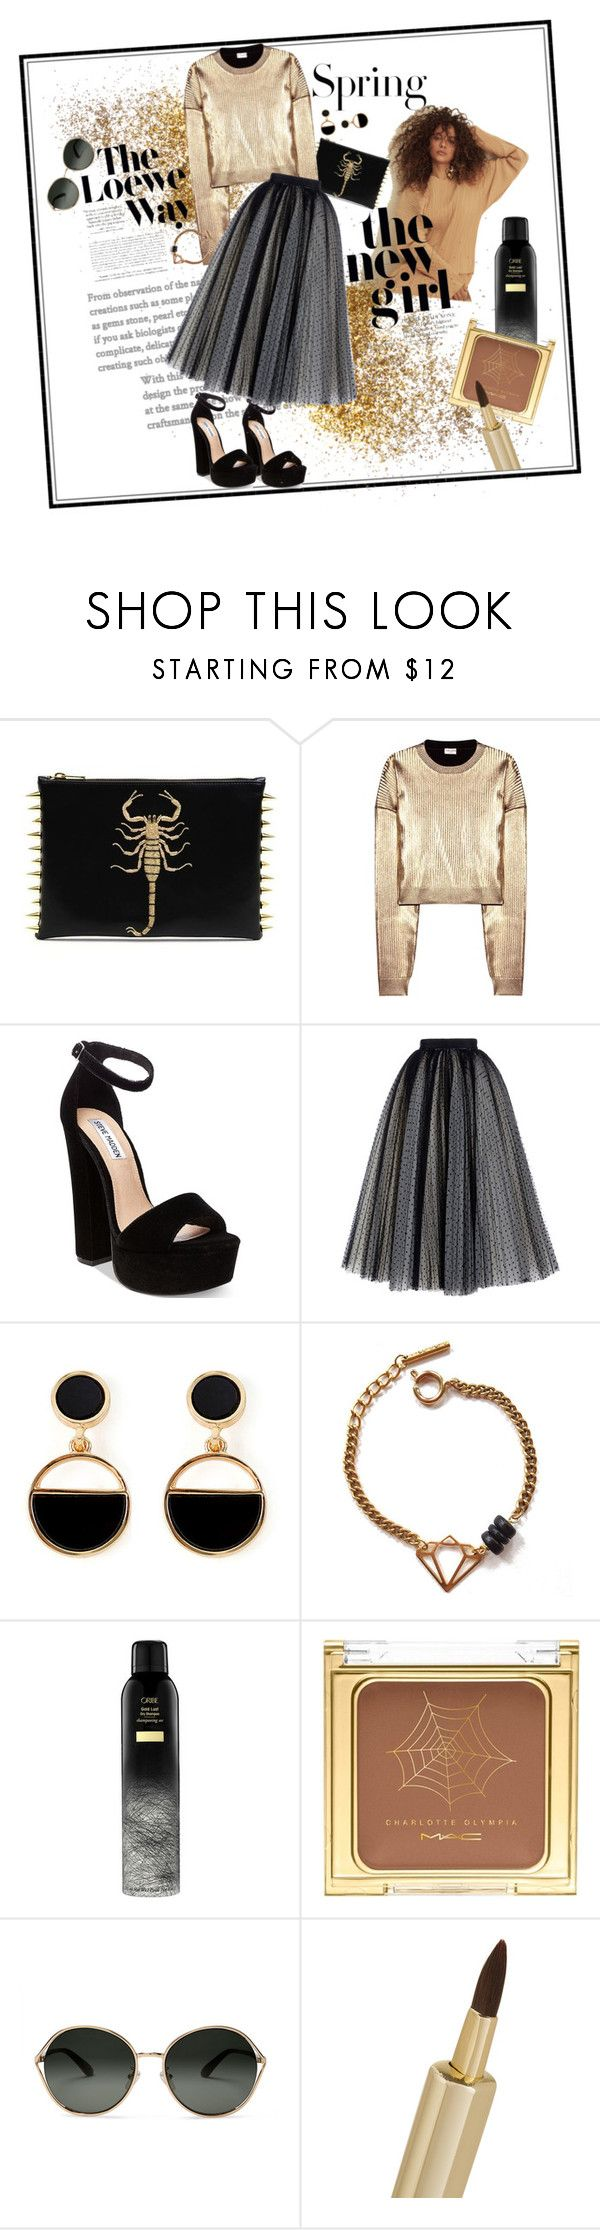 """""""Gold brass"""" by britt-catlynne-weatherall on Polyvore featuring H&M, Yves Saint Laurent, Steve Madden, Philosophy di Lorenzo Serafini, Warehouse, Tilly Doro, Loewe, MAC Cosmetics, TOMS and By Terry"""